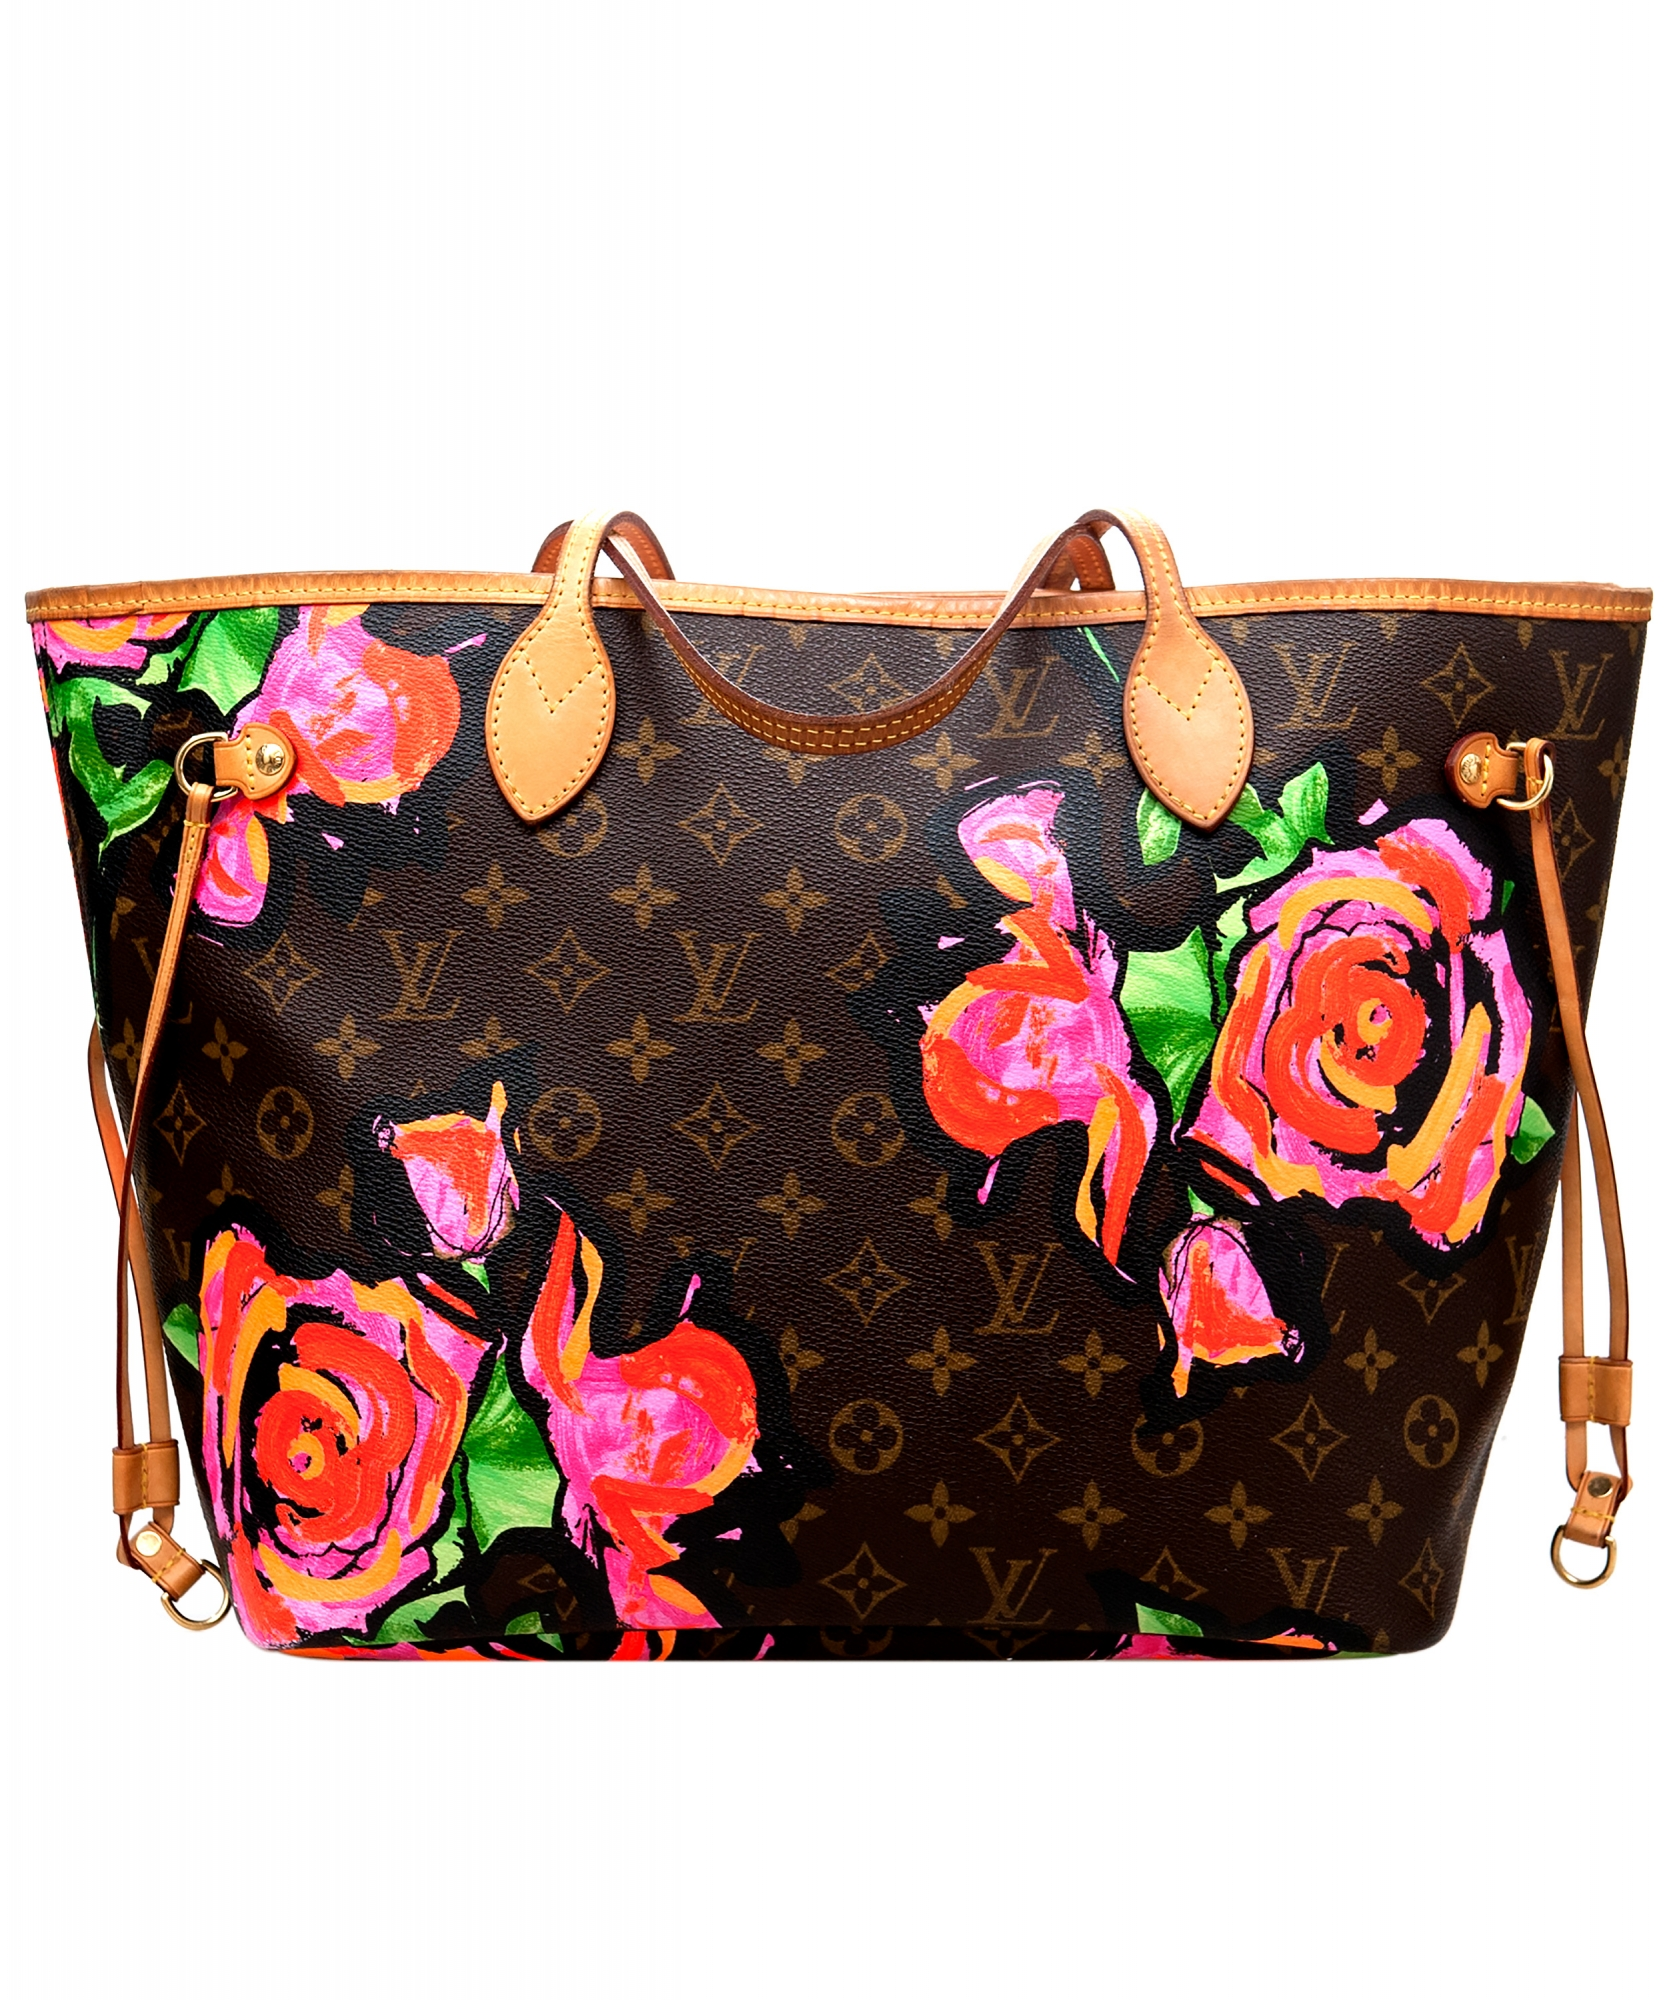 164ad3fecef0f Louis Vuitton Monogram Graffiti Roses Neverfull MM Bag - Limited Edition